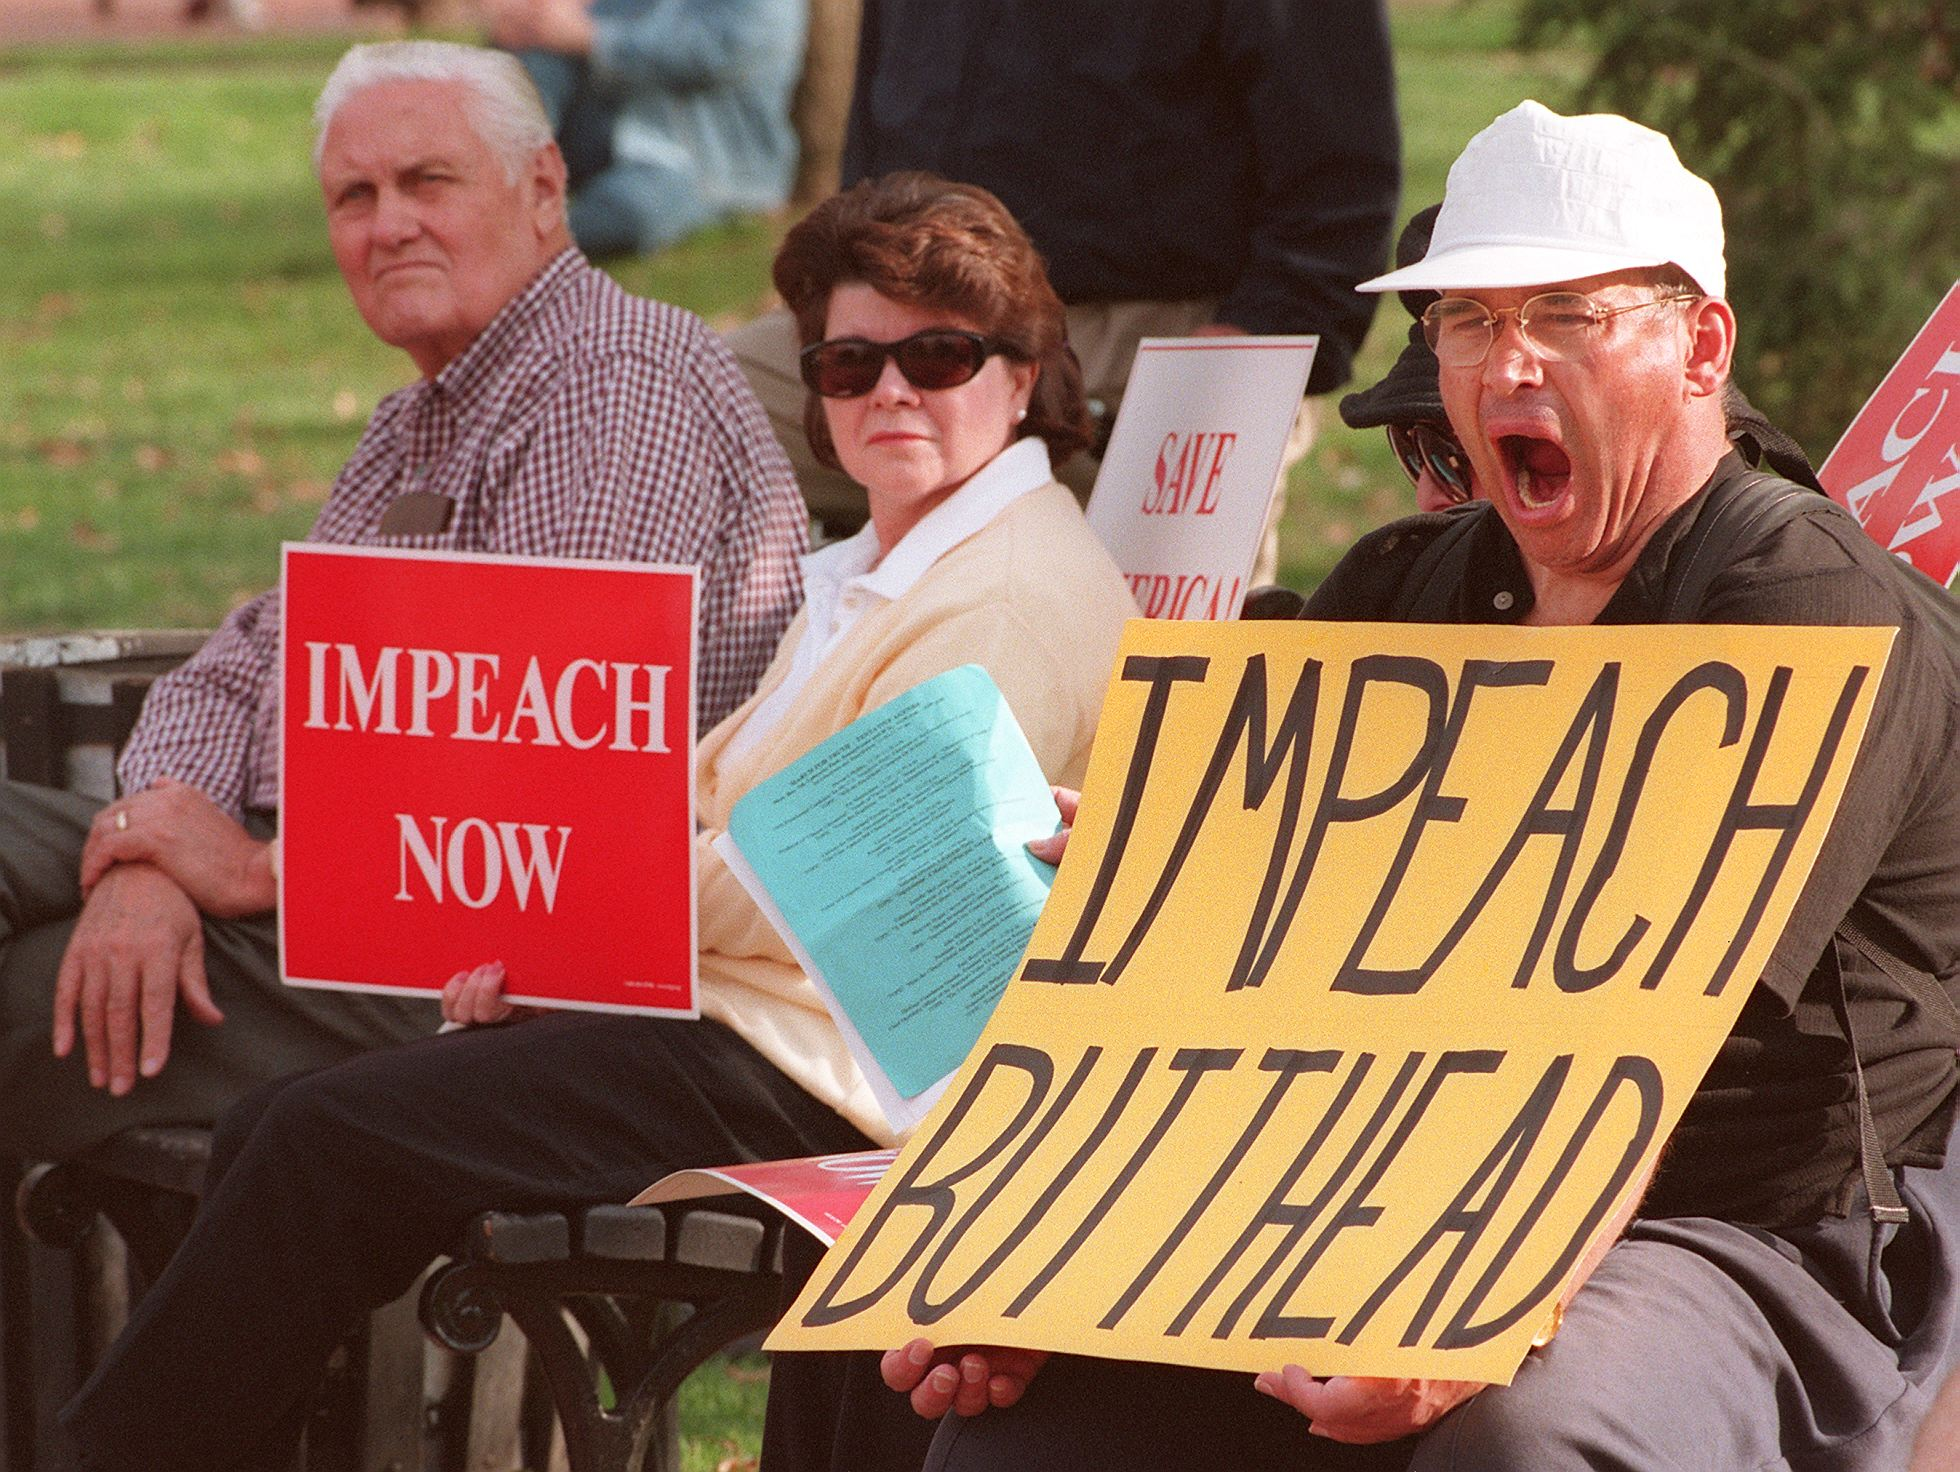 Unidentified protestors demanding the impeachment of US President Bill Clinton conduct their noontime protest from the park benches in Lafayette Park across from the White House 07 December. (Photo credit should read PAUL J. RICHARDS/AFP/Getty Images)